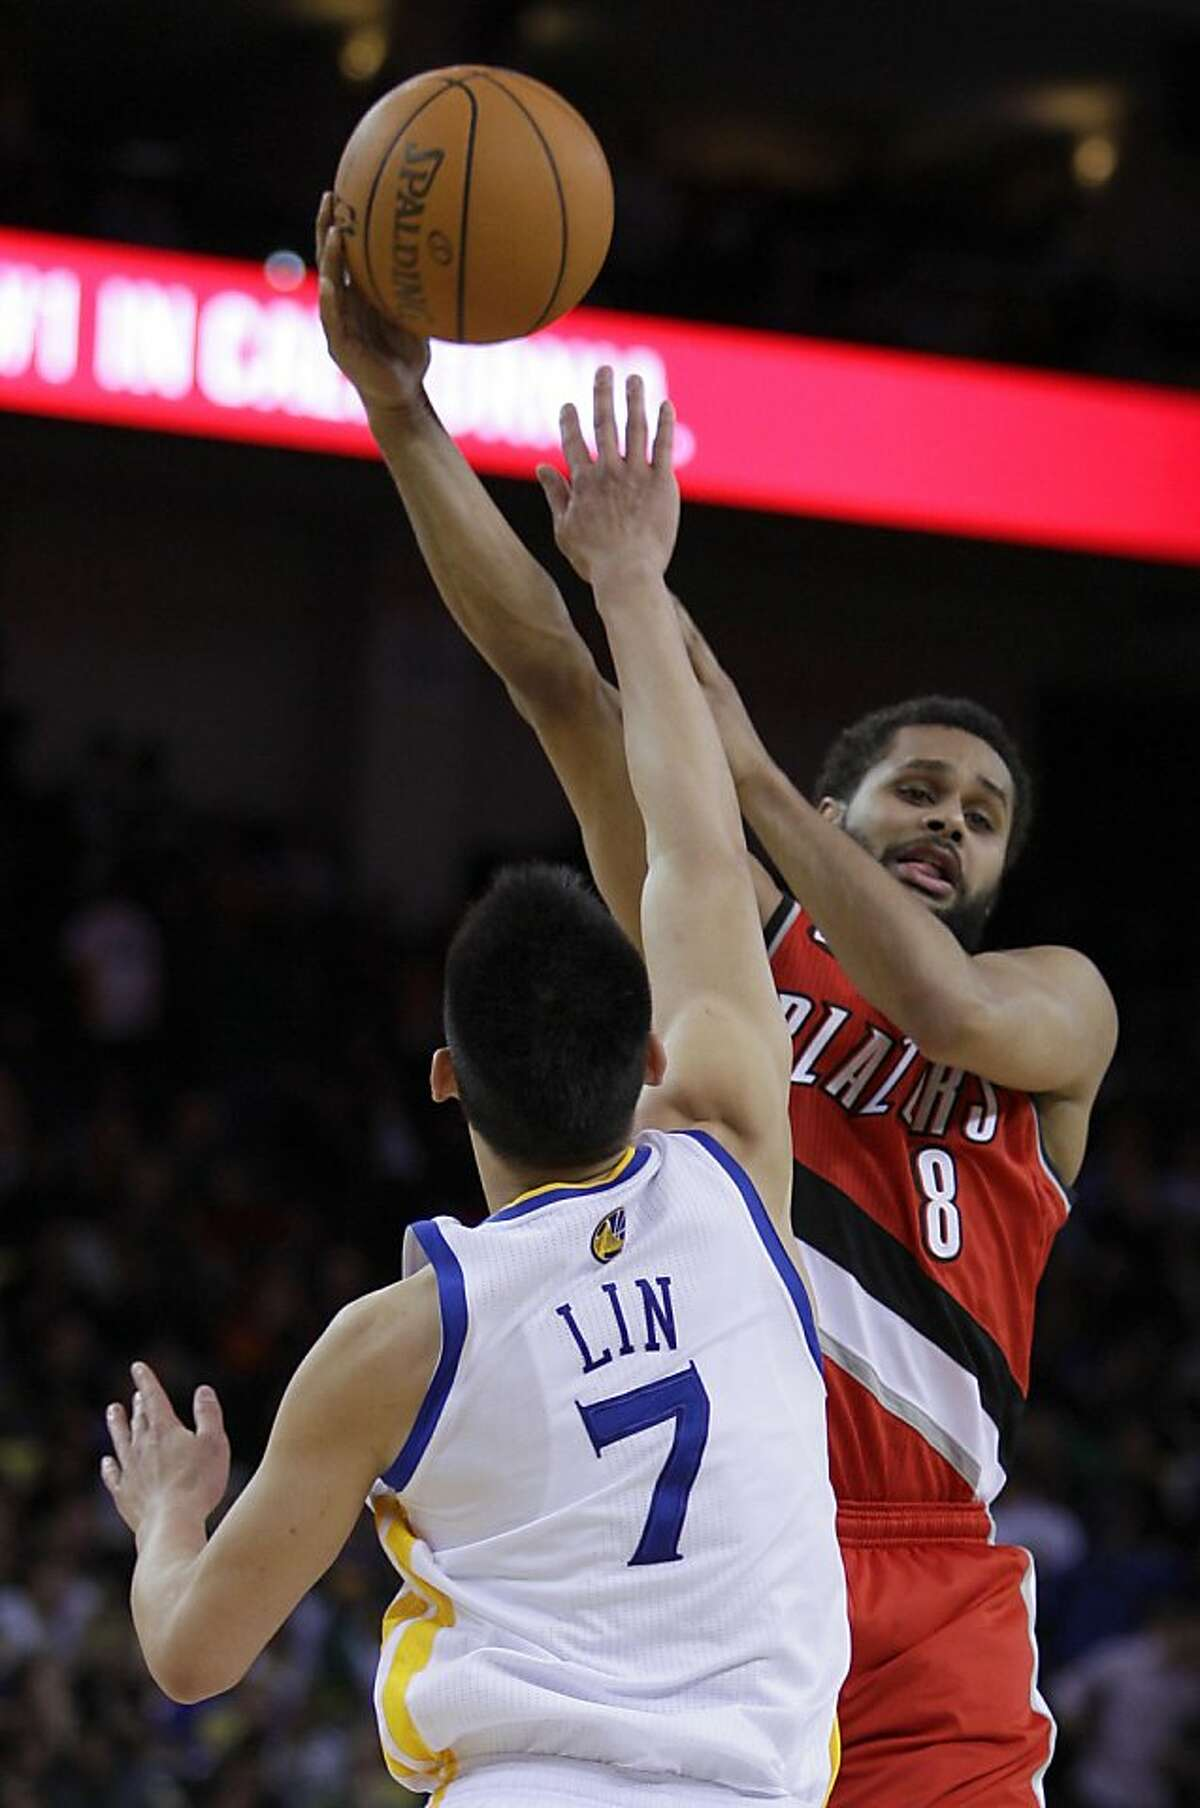 Portland Trail Blazers' Patrick Mills, right, passes away from Golden State Warriors' Jeremy Lin during the second half of an NBA basketball game Wednesday, April 13, 2011, in Oakland, Calif.